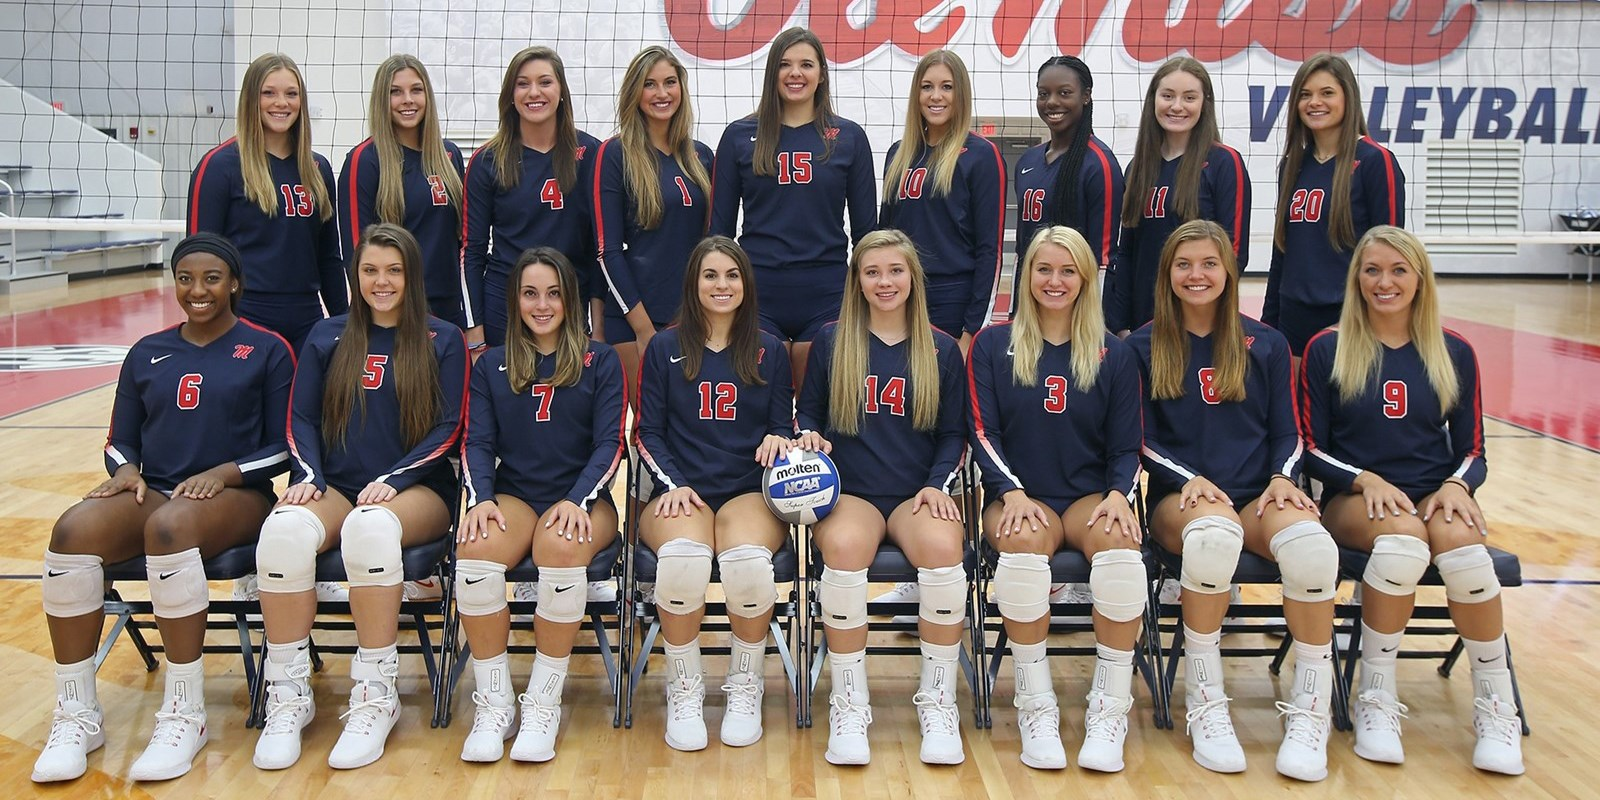 2018 Volleyball Roster Ole Miss Athletics